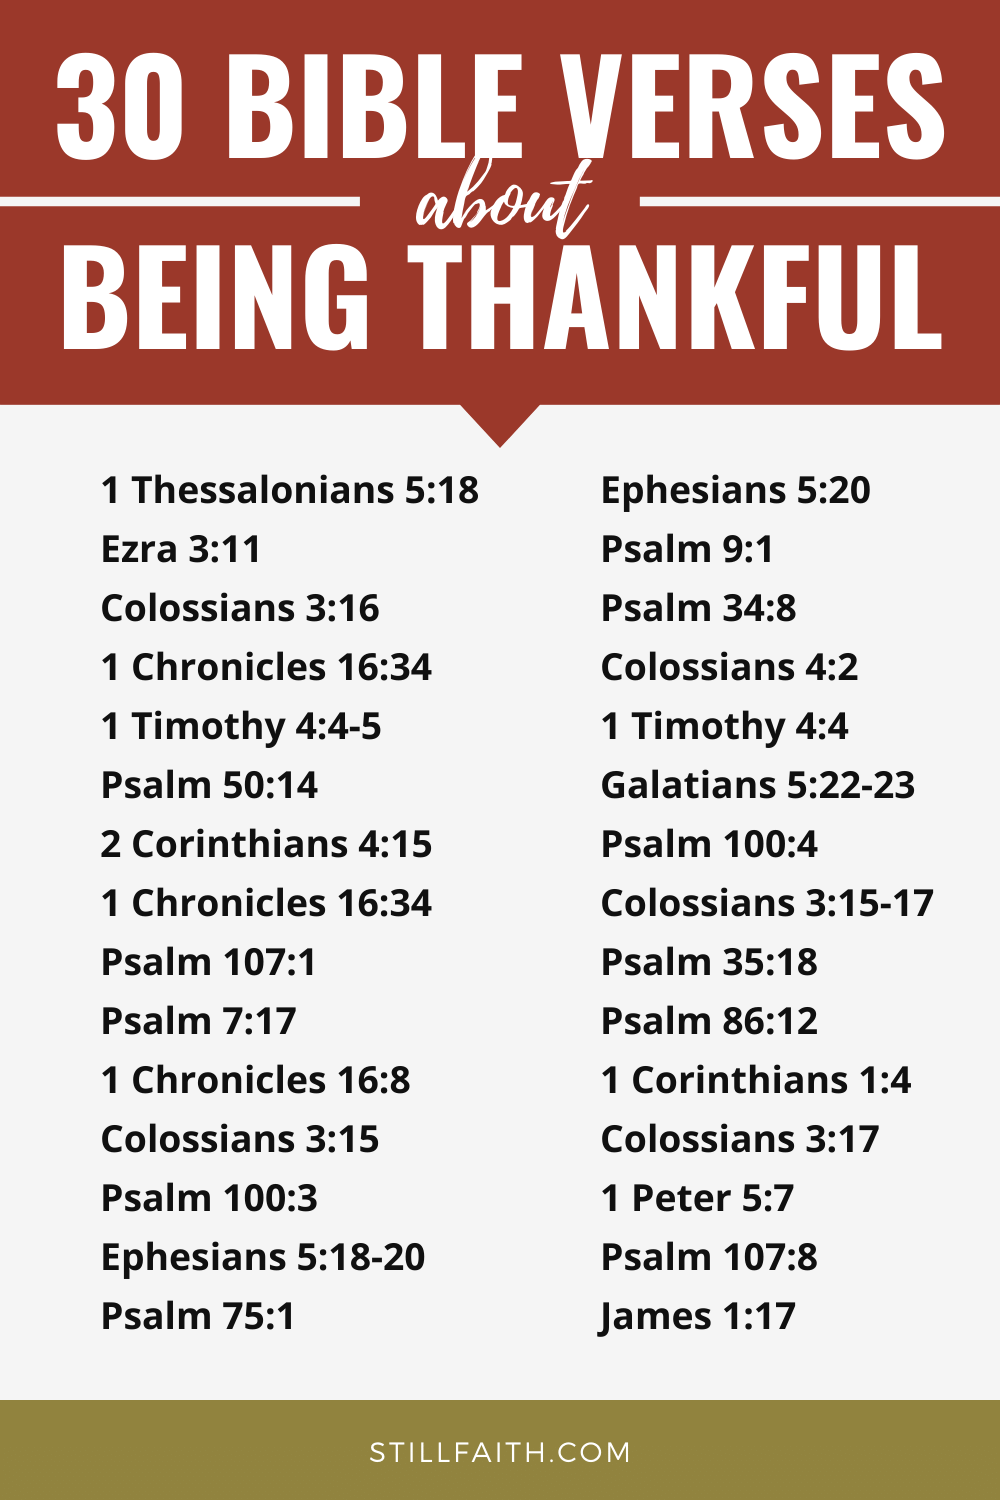 151 Bible Verses about Being Thankful